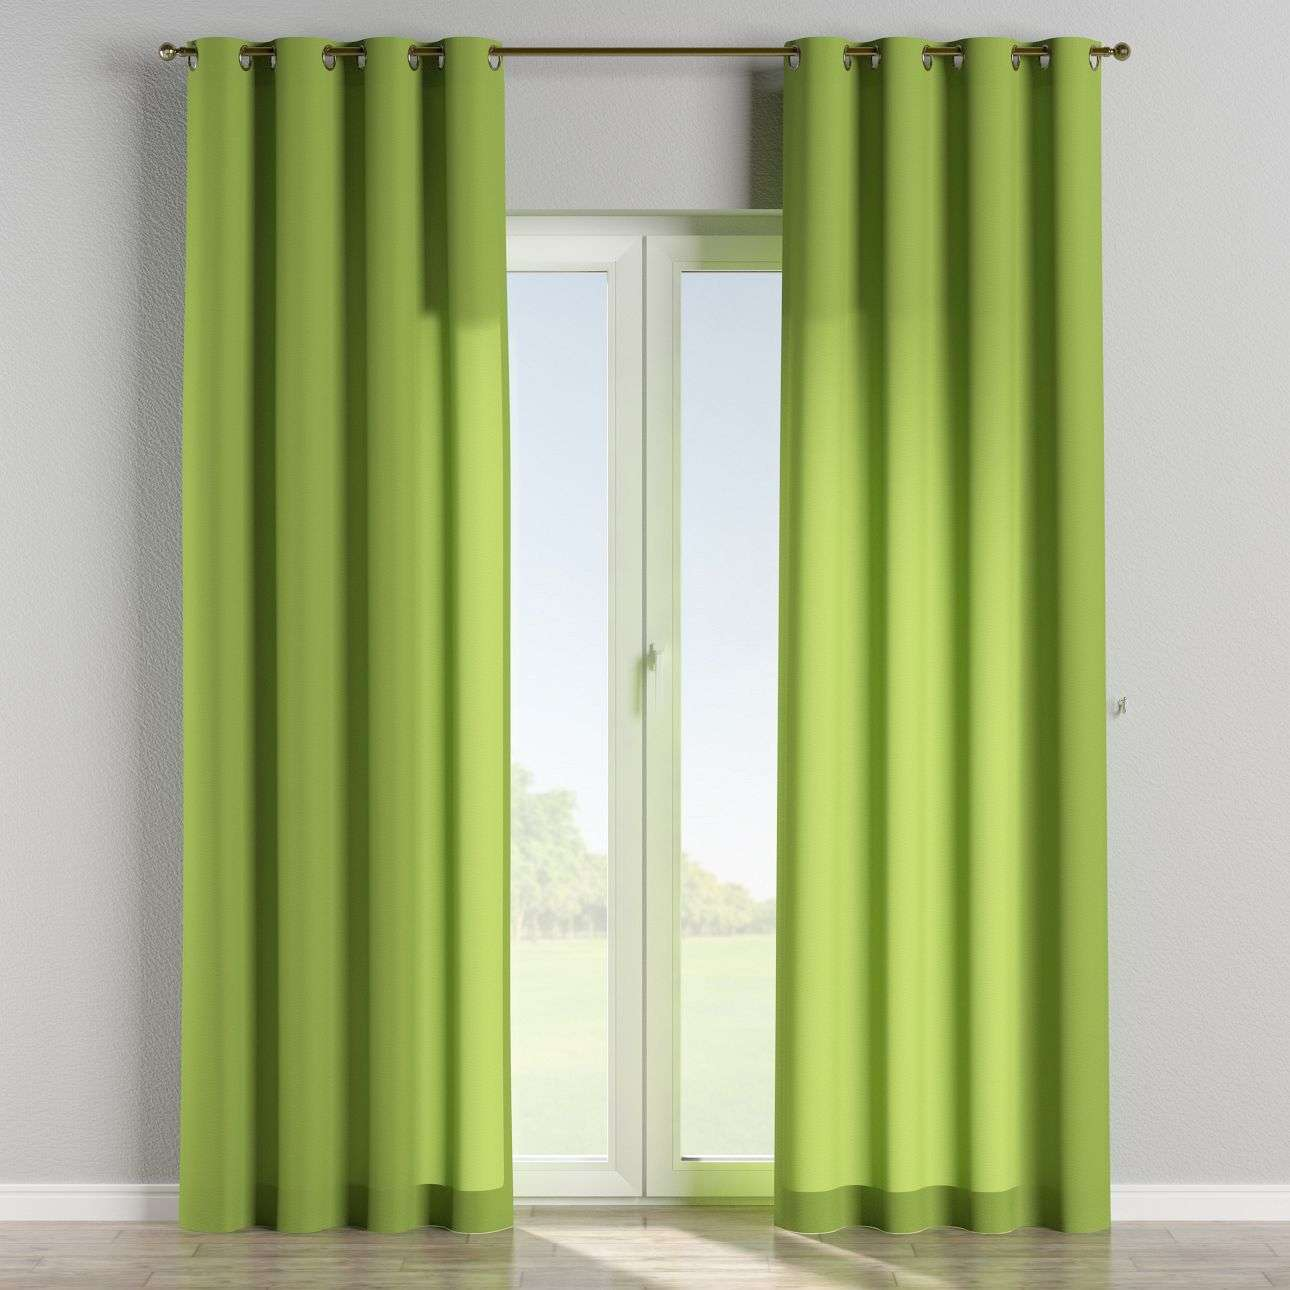 Eyelet curtains 130 × 260 cm (51 × 102 inch) in collection Quadro, fabric: 136-37